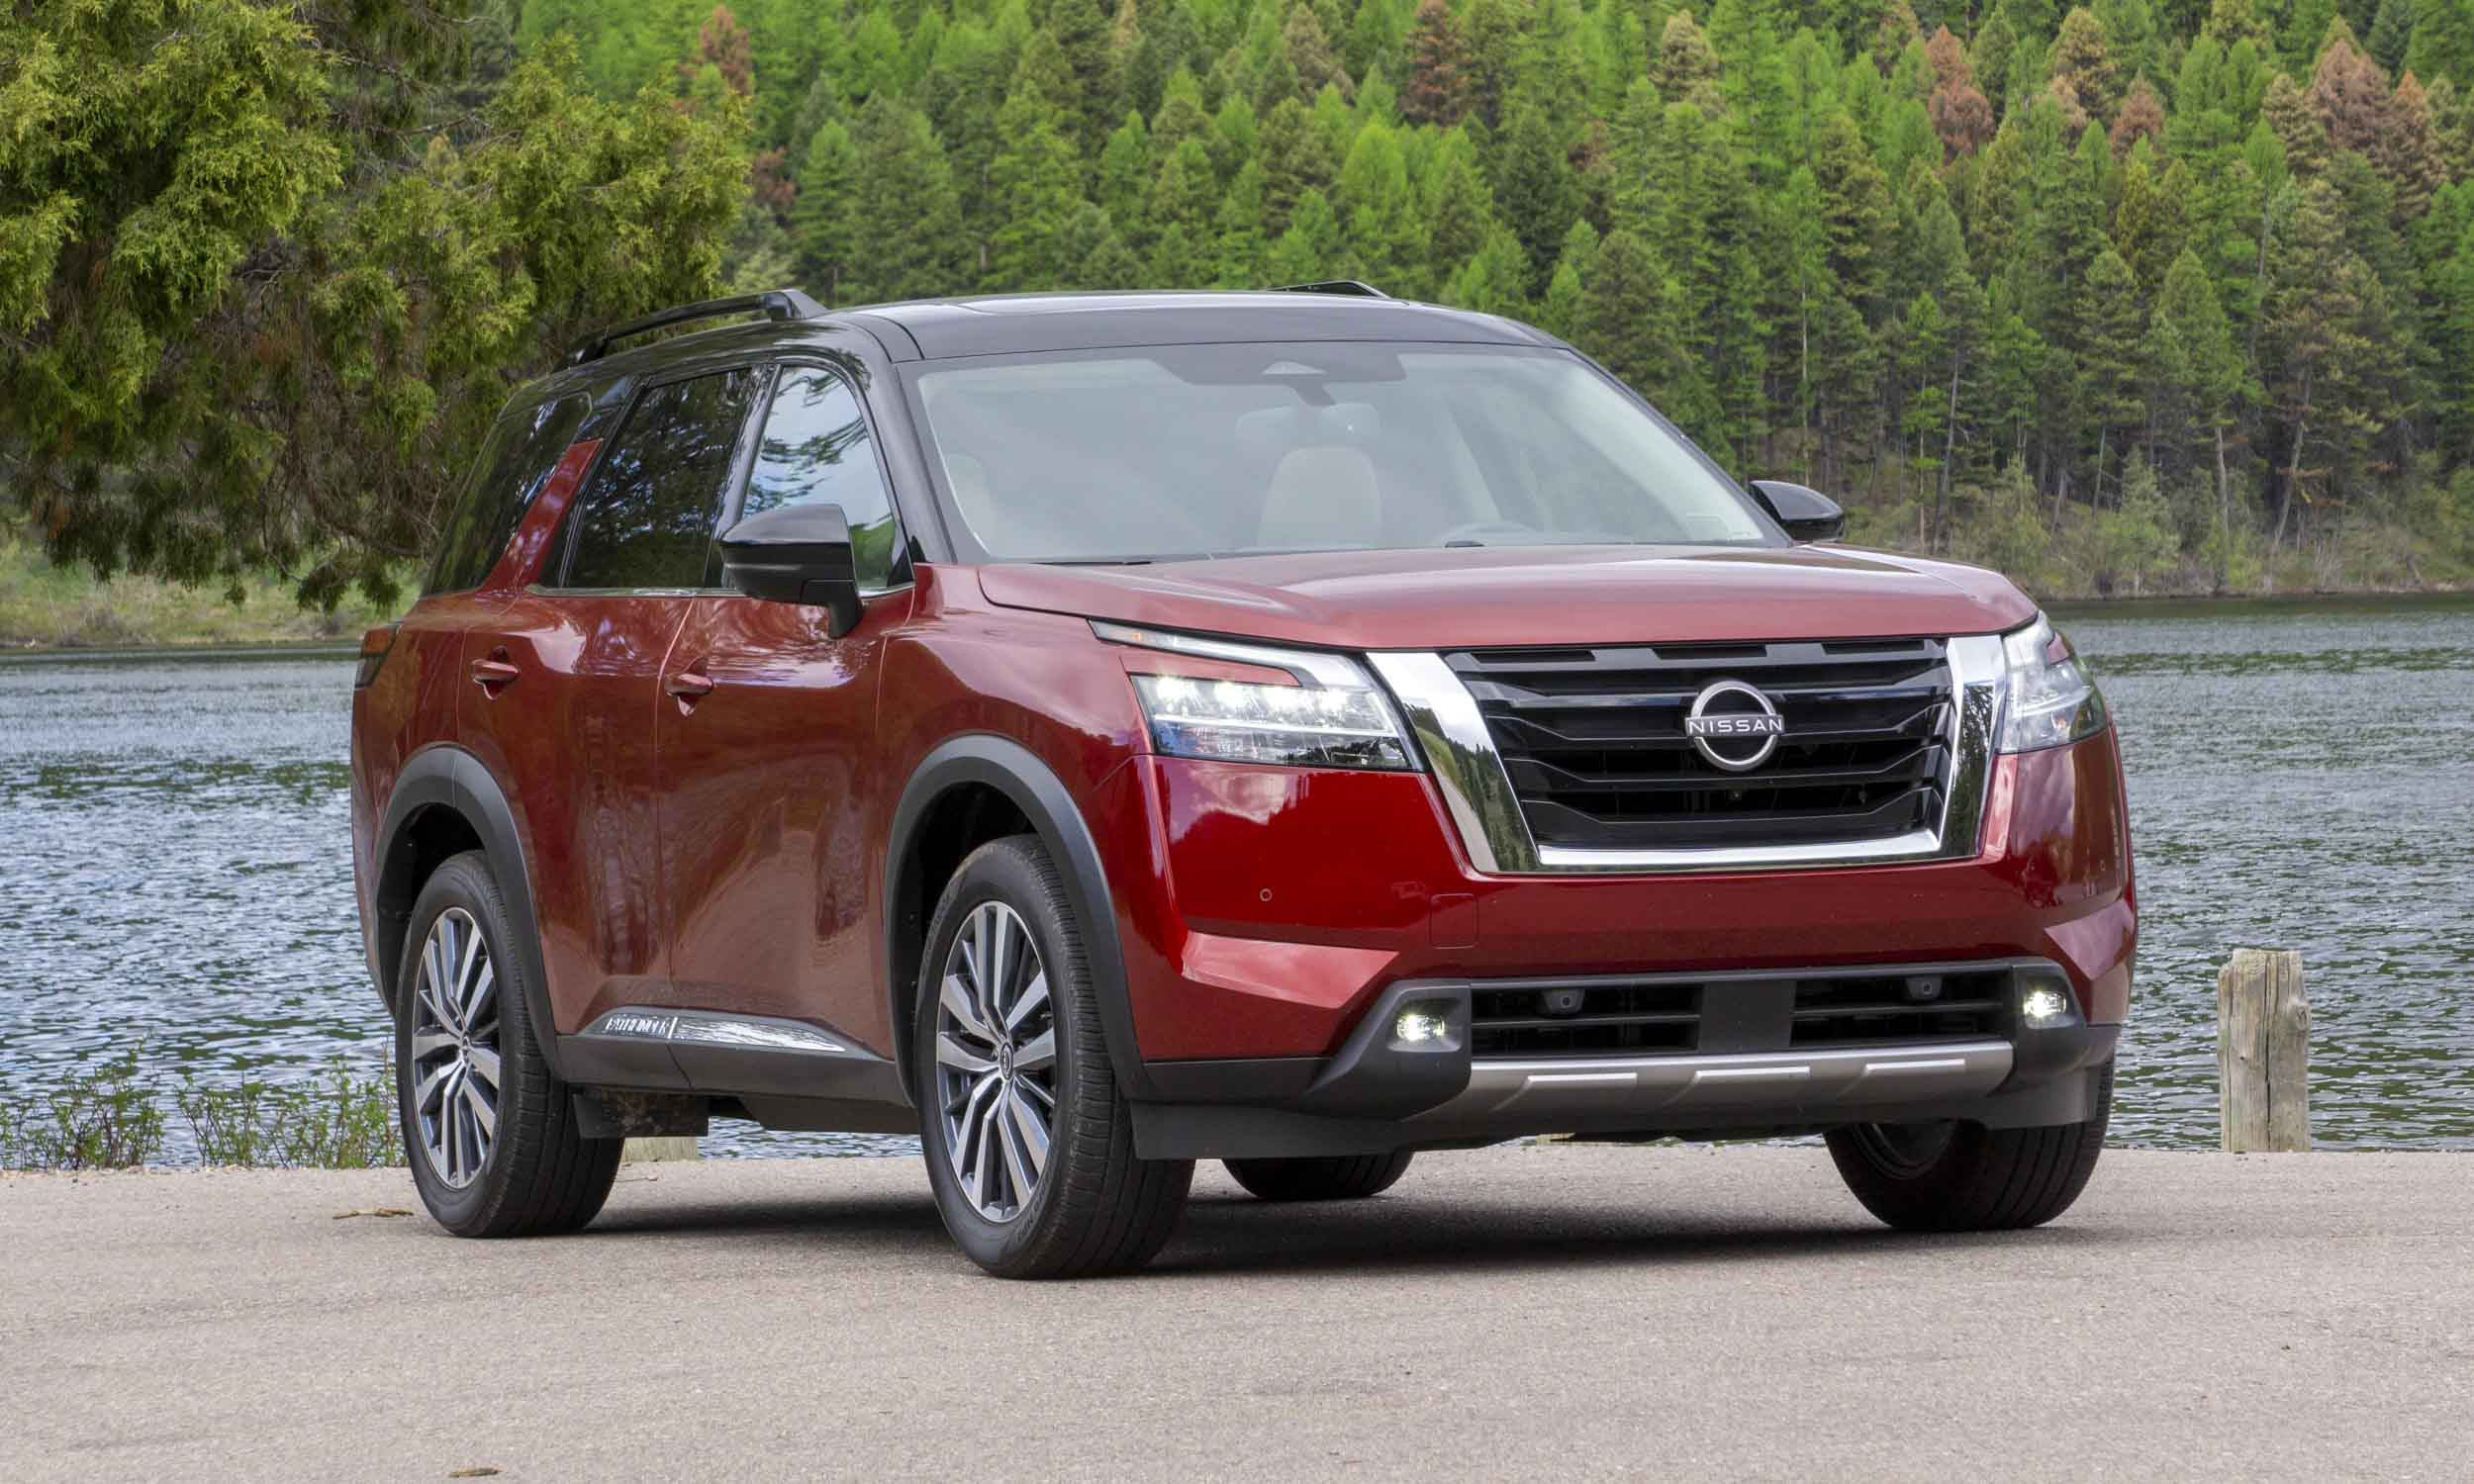 2022 Nissan Pathfinder: First Drive Review